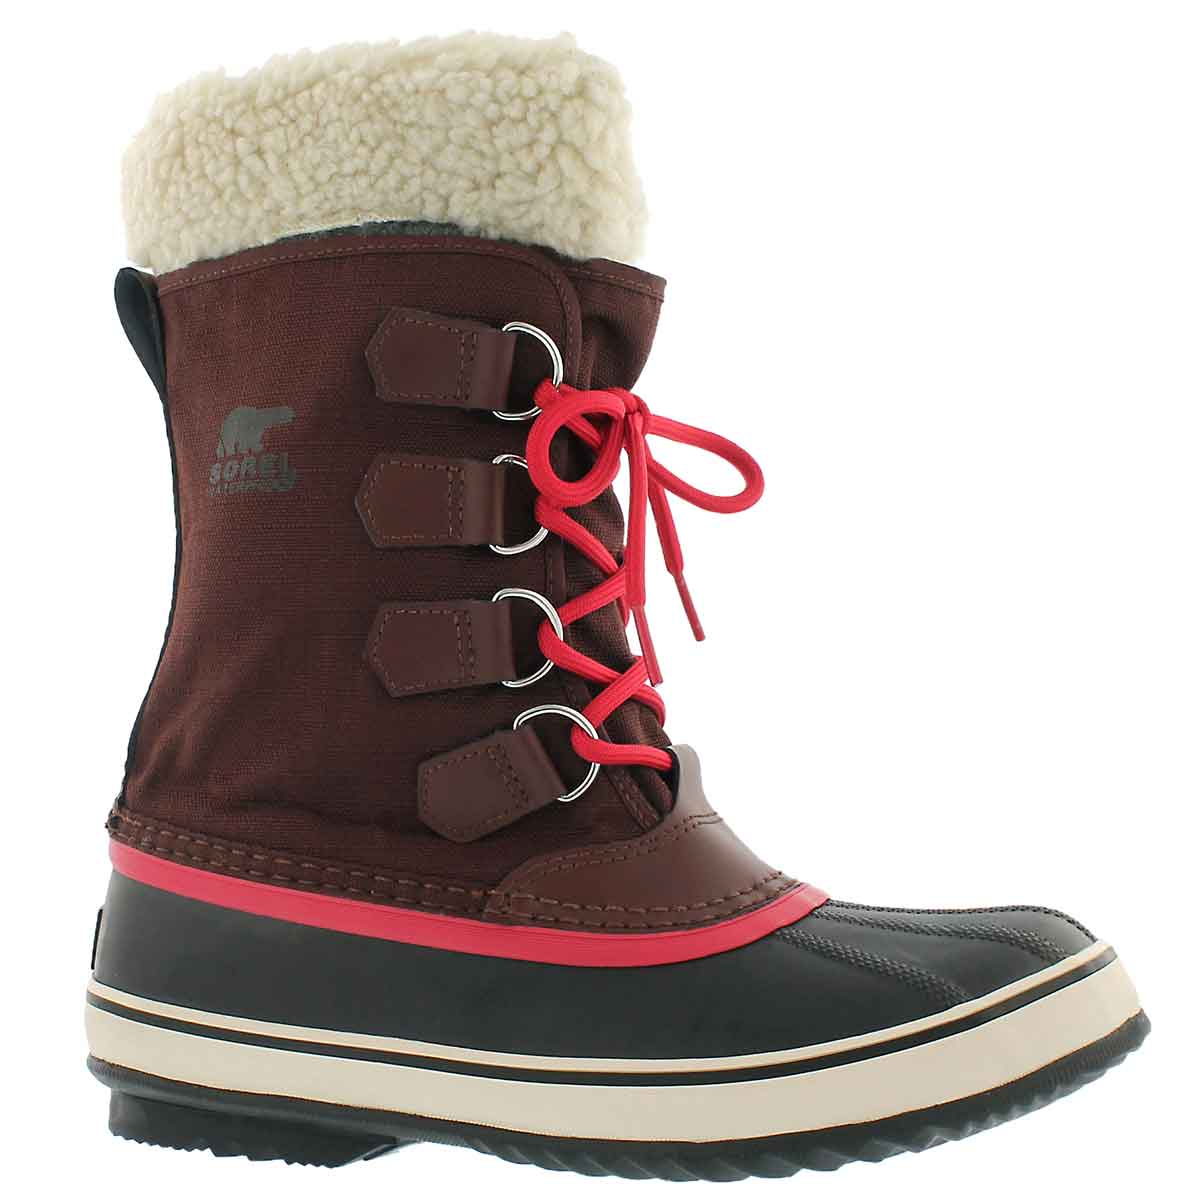 Lds Winter Carnival redwood winter boot